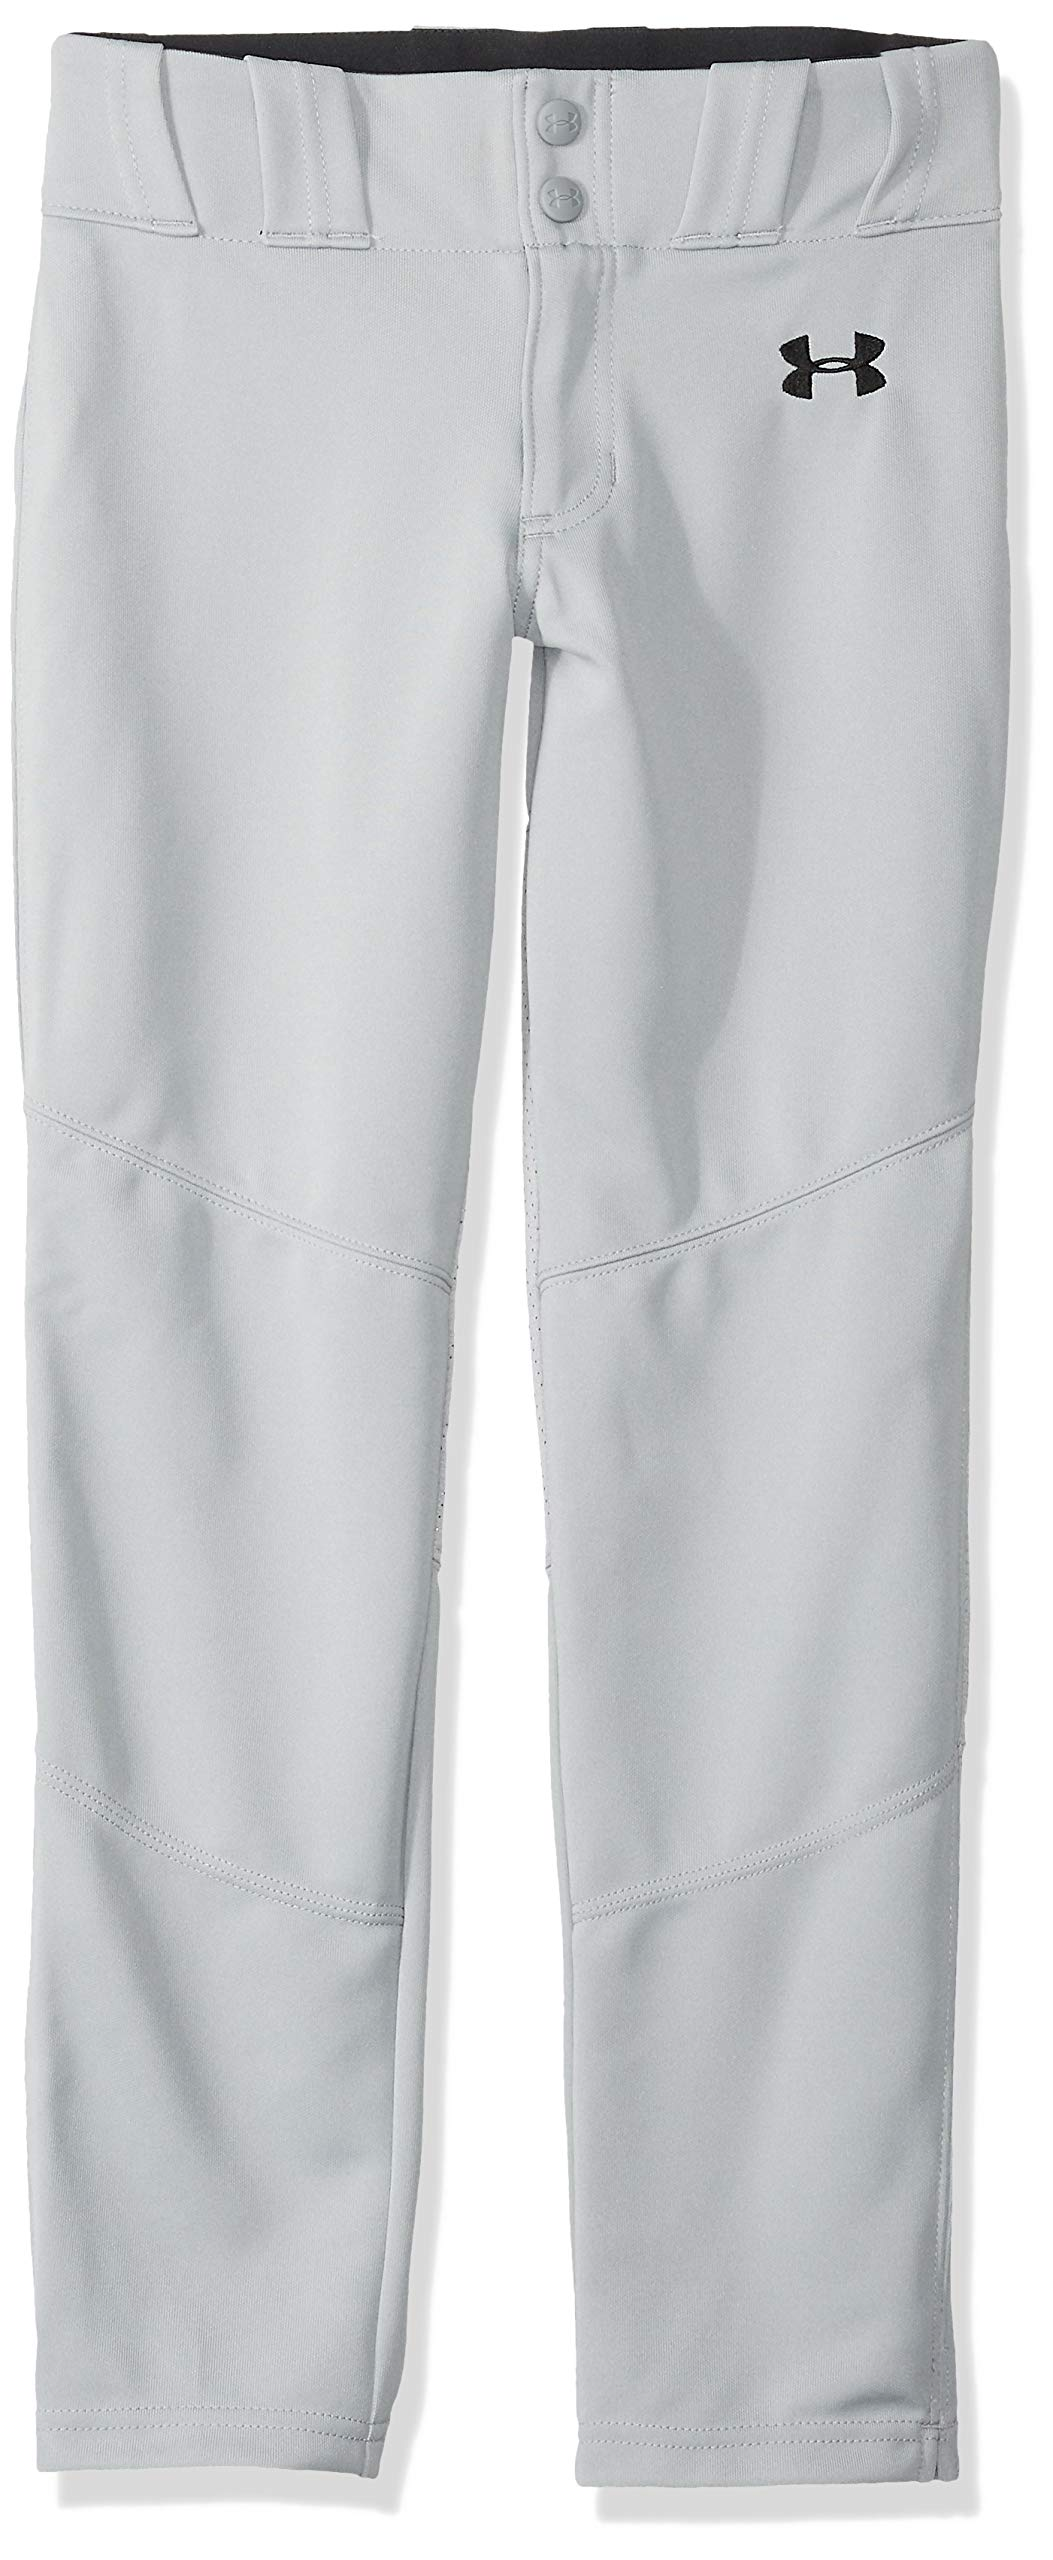 Under Armour Ace Relaxed Pants, Baseball Gray//Black, Youth Medium by Under Armour